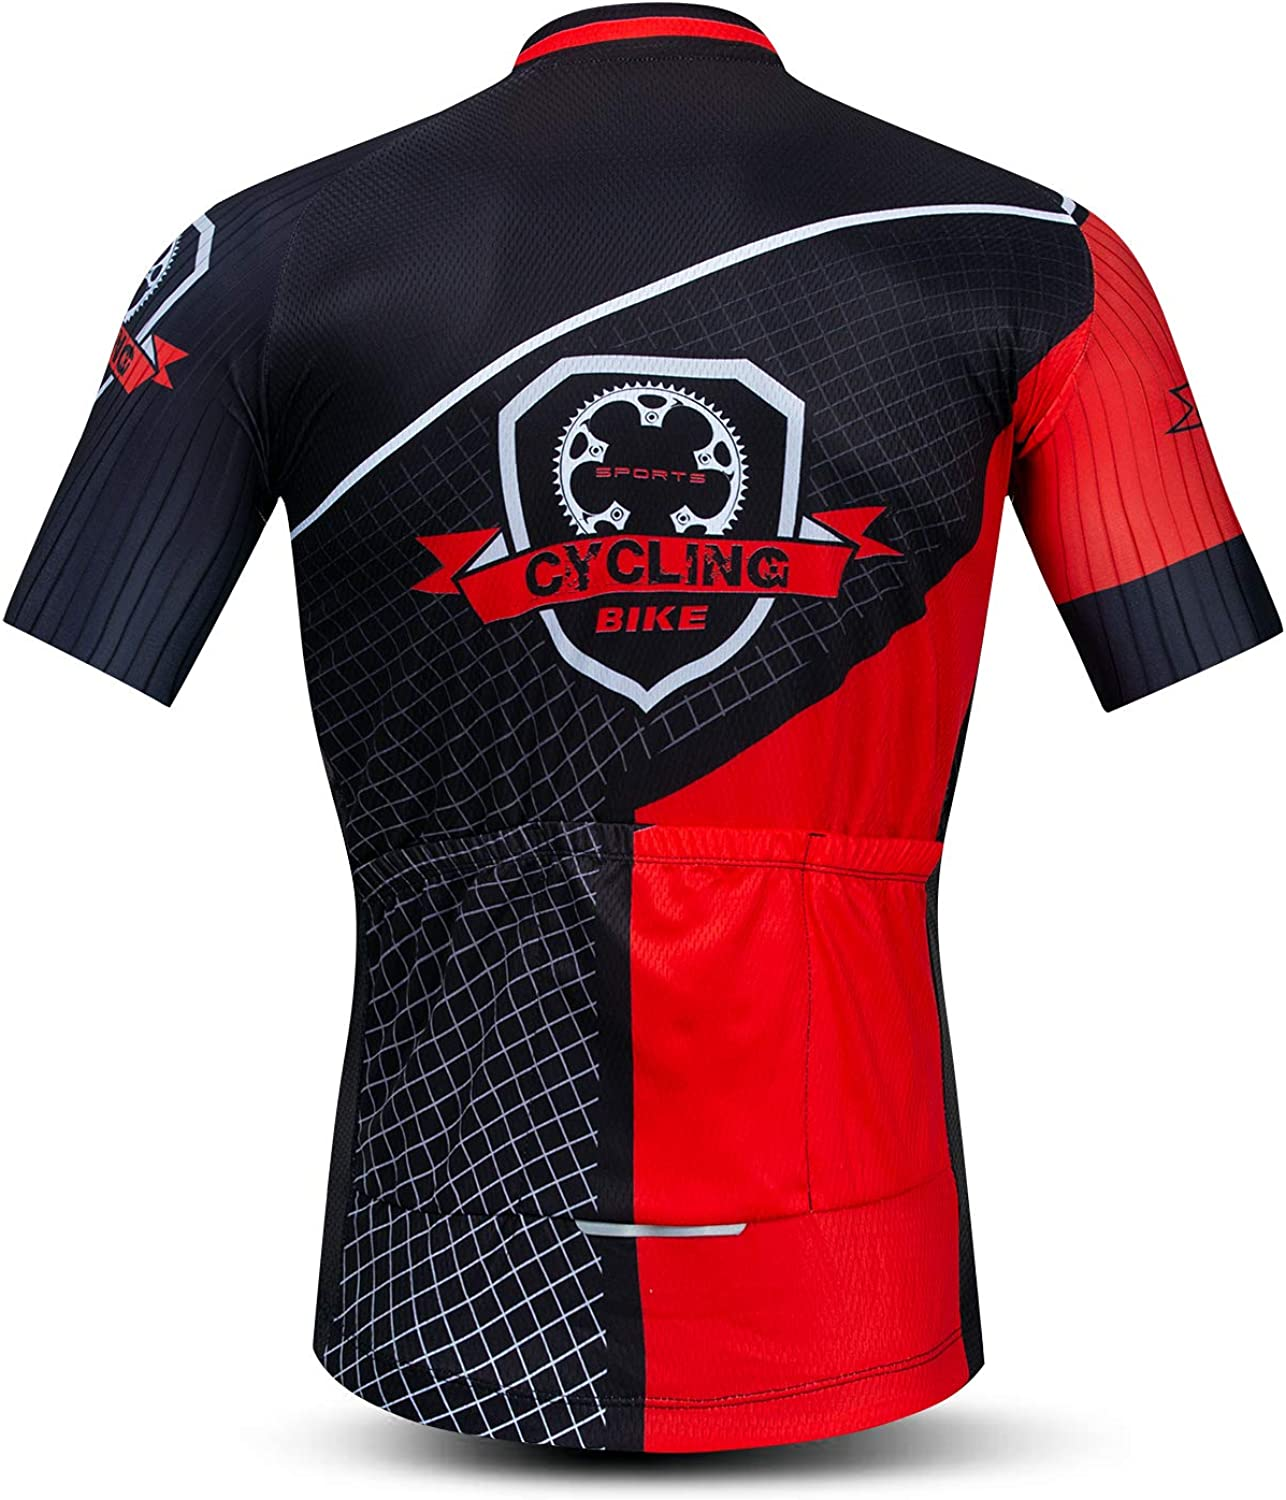 Men/'s Cycling Jersey Mens Bike Clothing Lycra Short Sleeve Pro MTB 3D Bicycle Shirts Tops Quick Dry,Pockets,Breathable